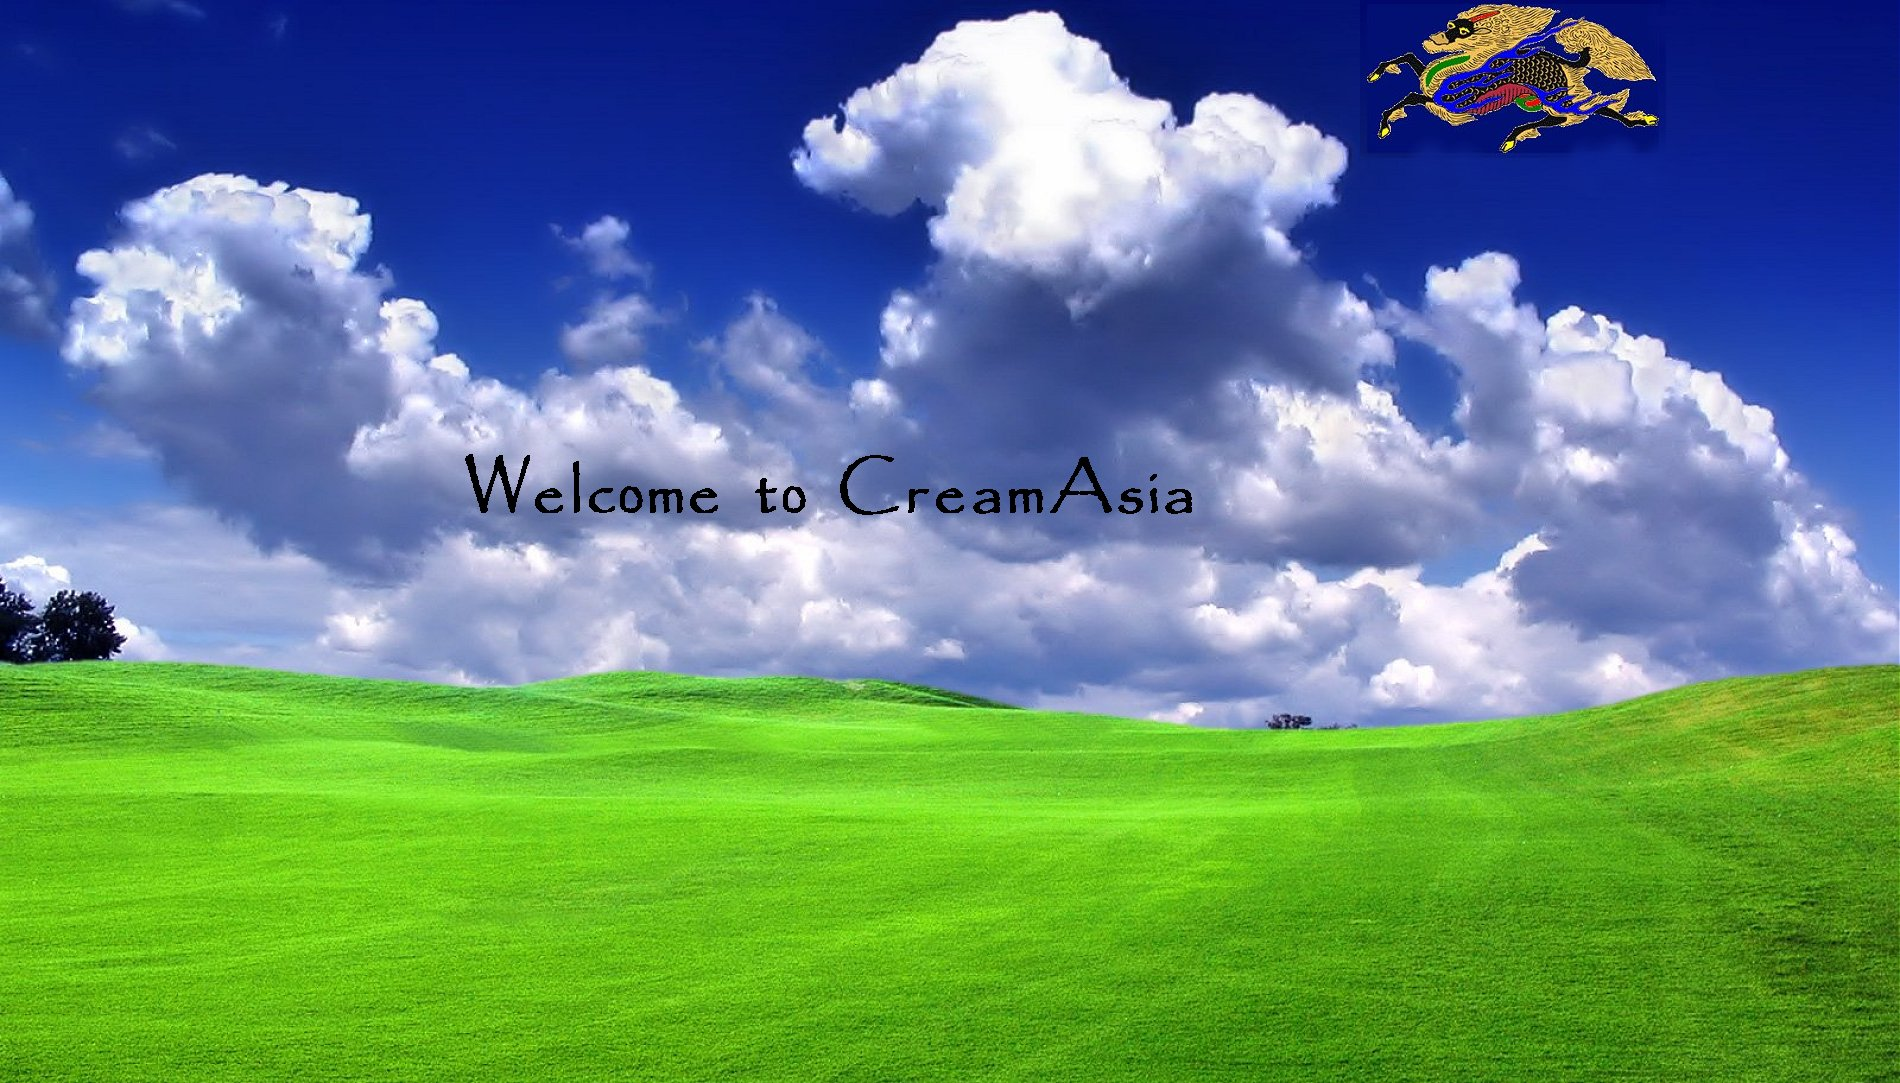 To save as Wallpaper Right Click over CreamAsia image and Select: Set as Background